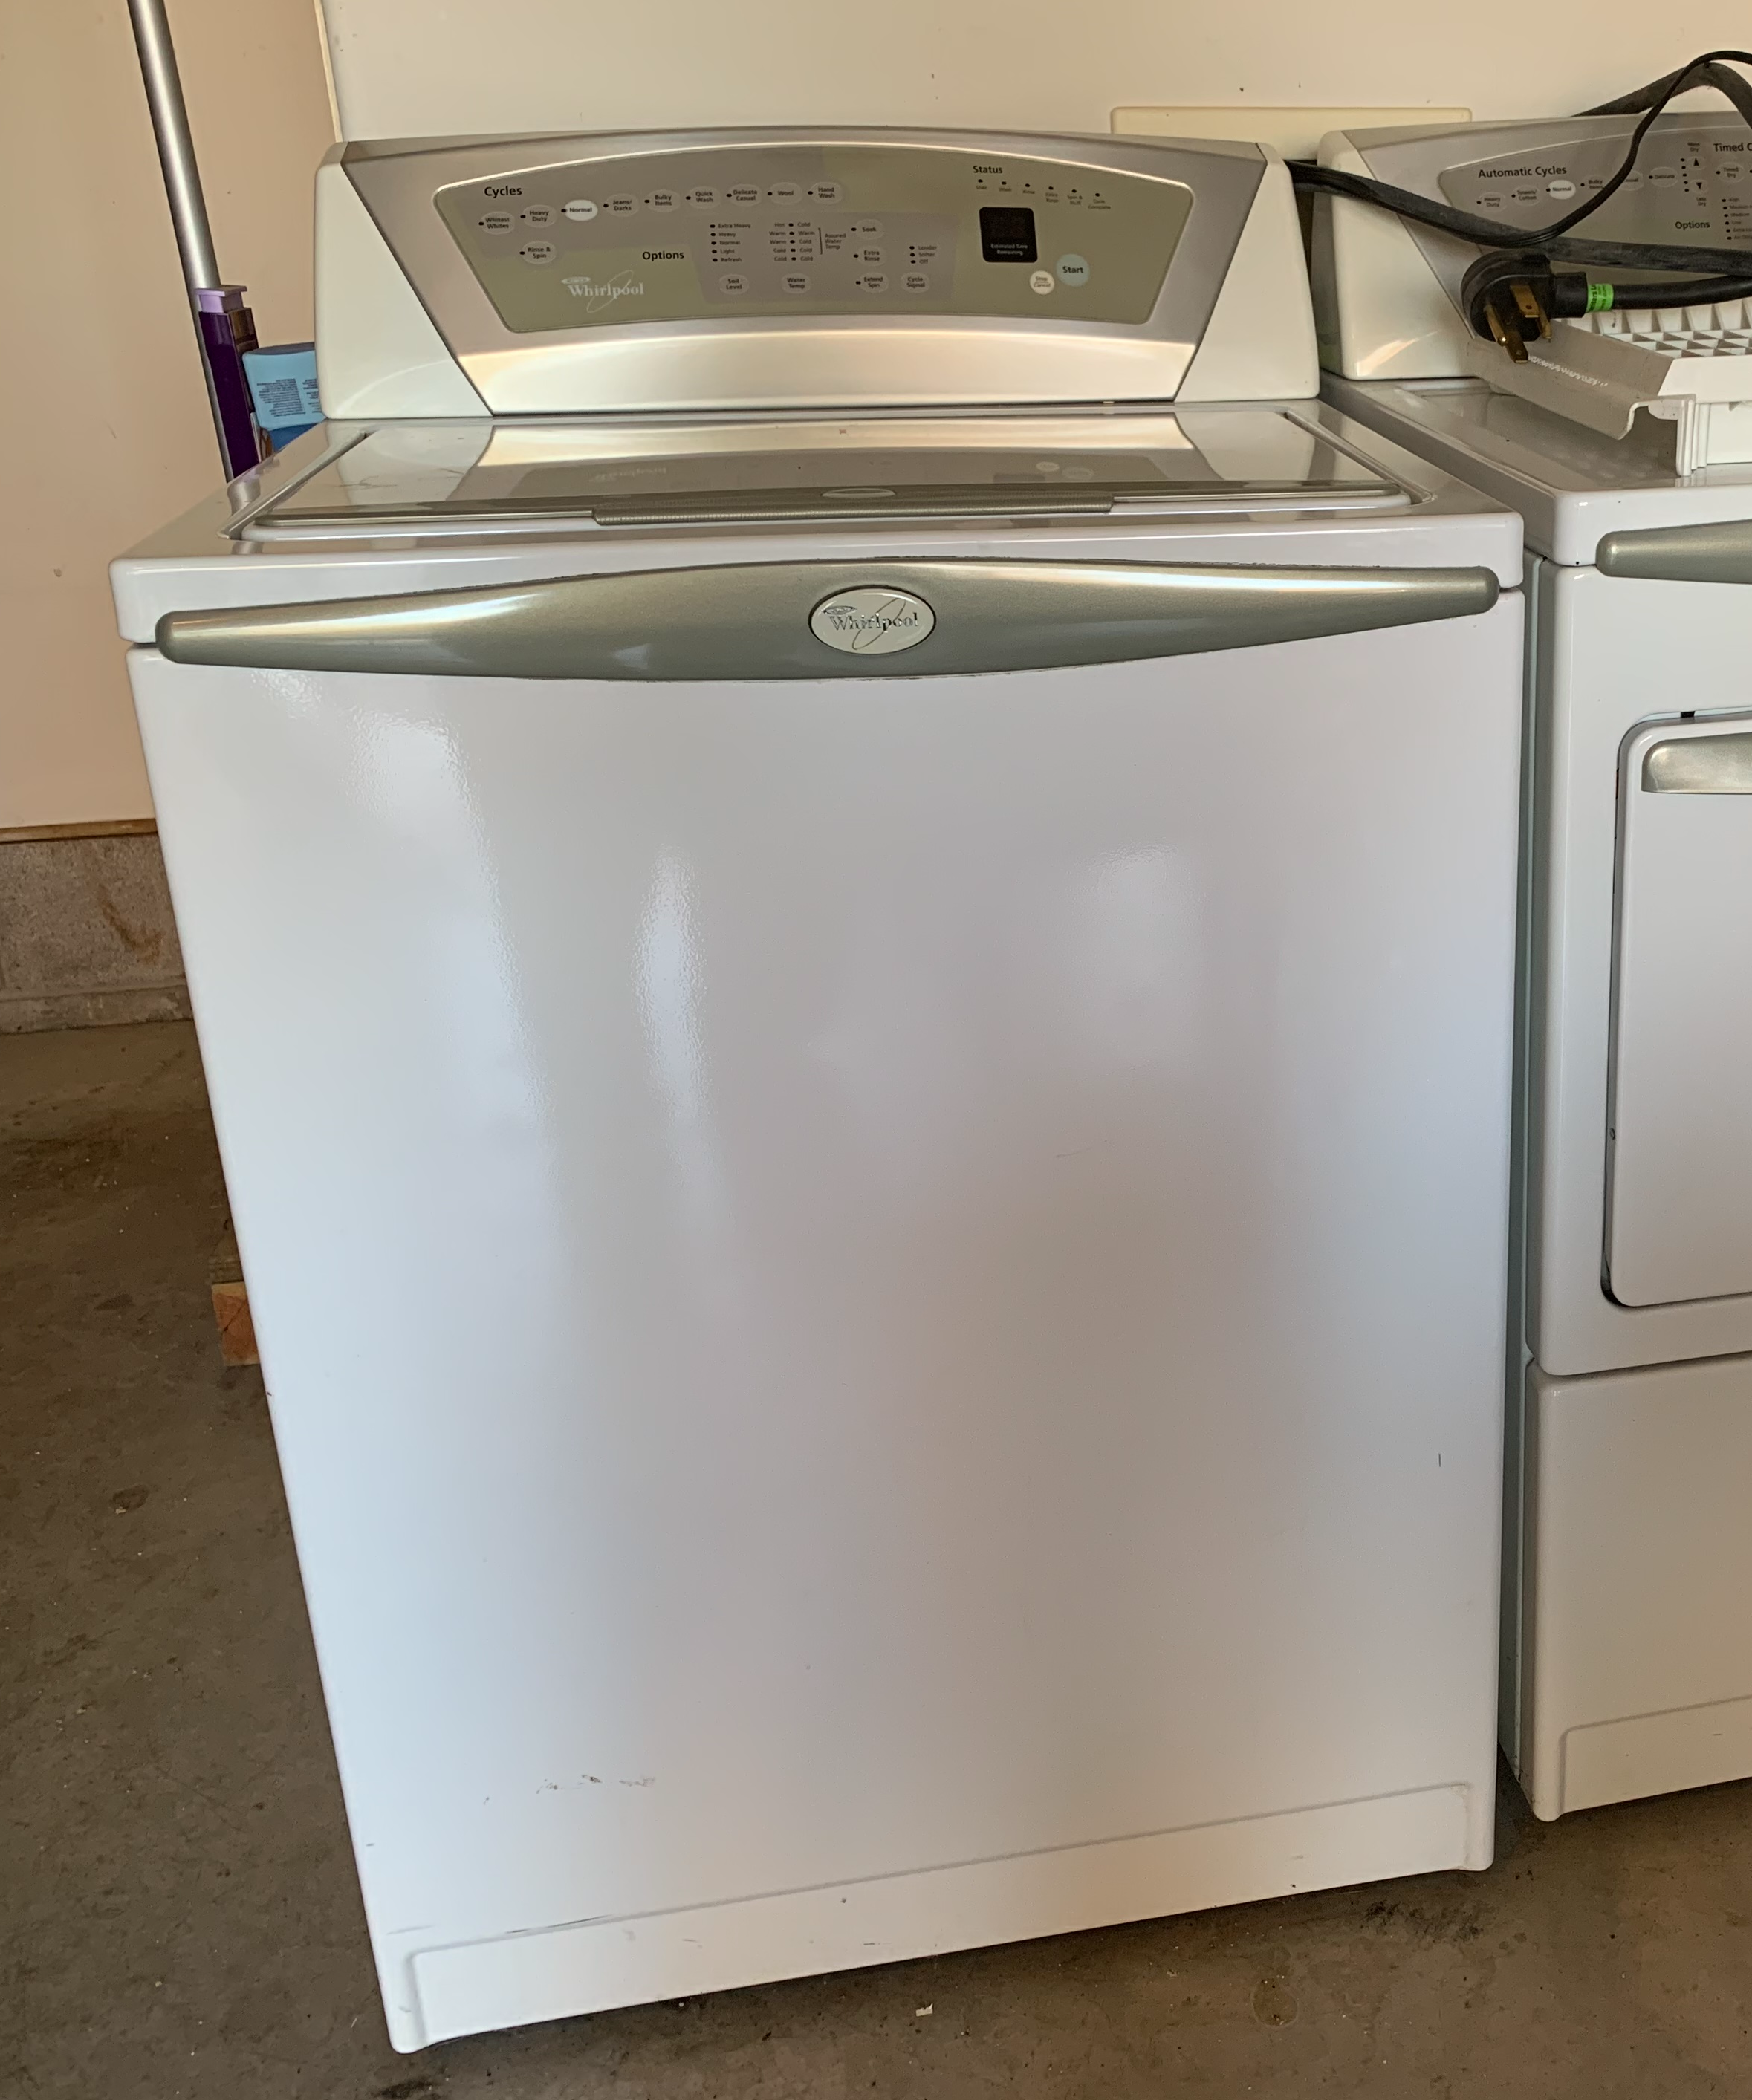 Washer for sale image 1